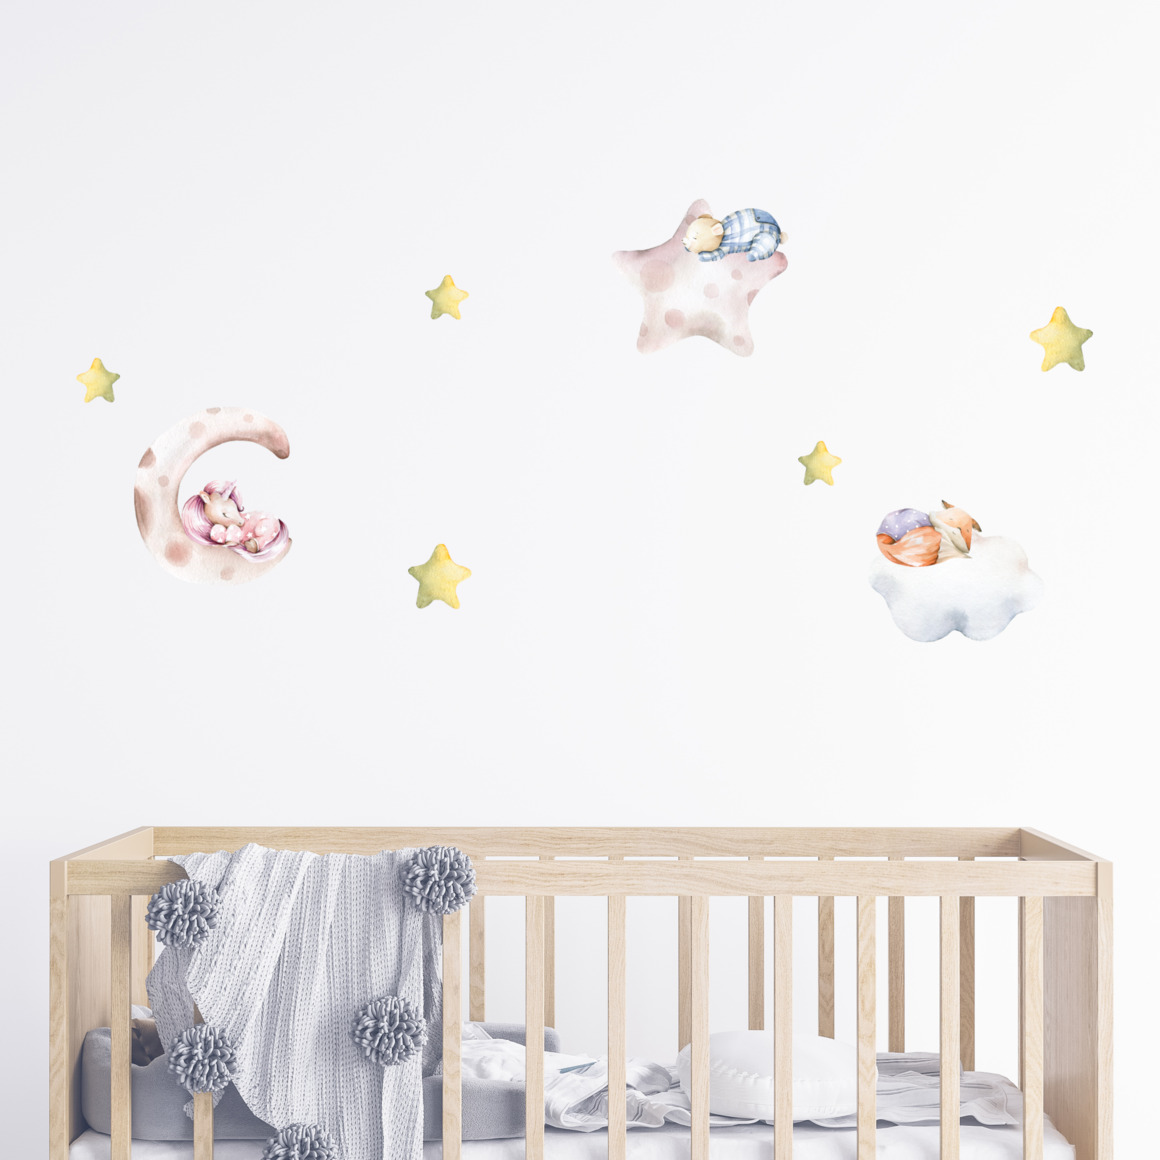 Fabric wall decals - Dream in the clouds   Trada Marketplace